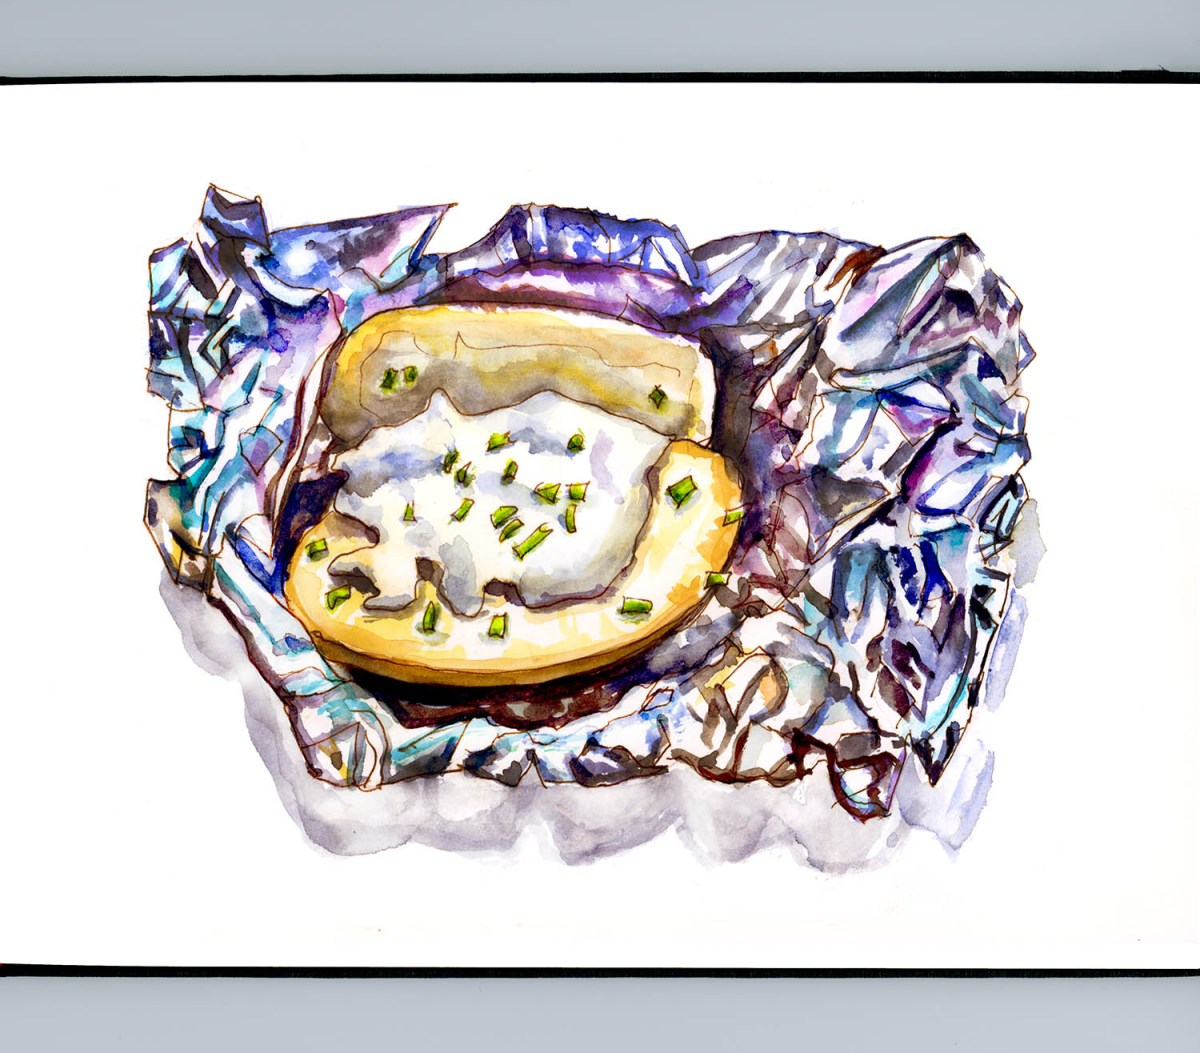 #WorldWatercolorGroup - Day 7 - The Texture Of Watercolor - Foil Baked Potato - Doodlewash